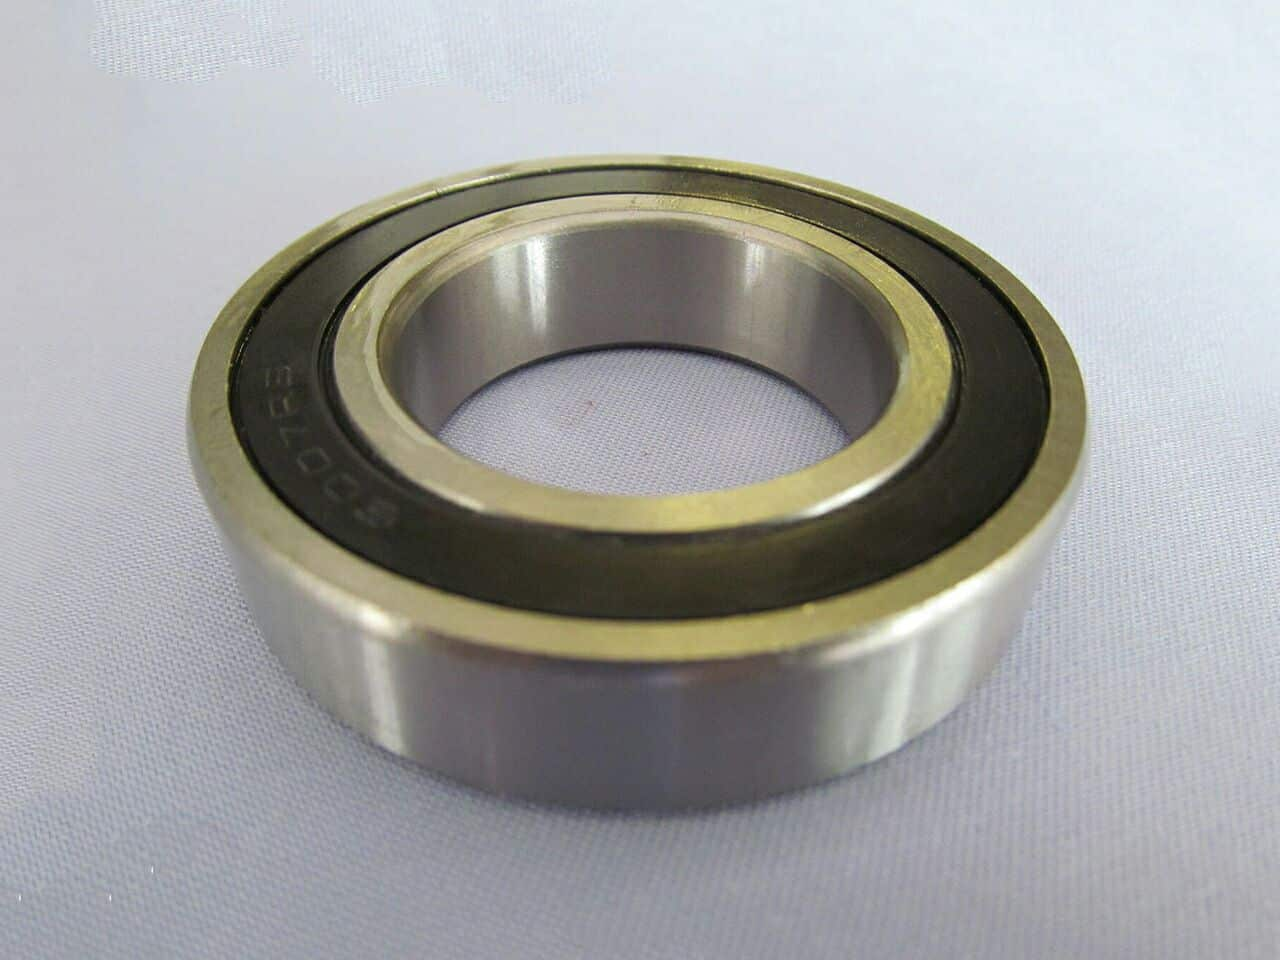 060750S Norton Commando sealed clutch bearing - Classic Bike Spares